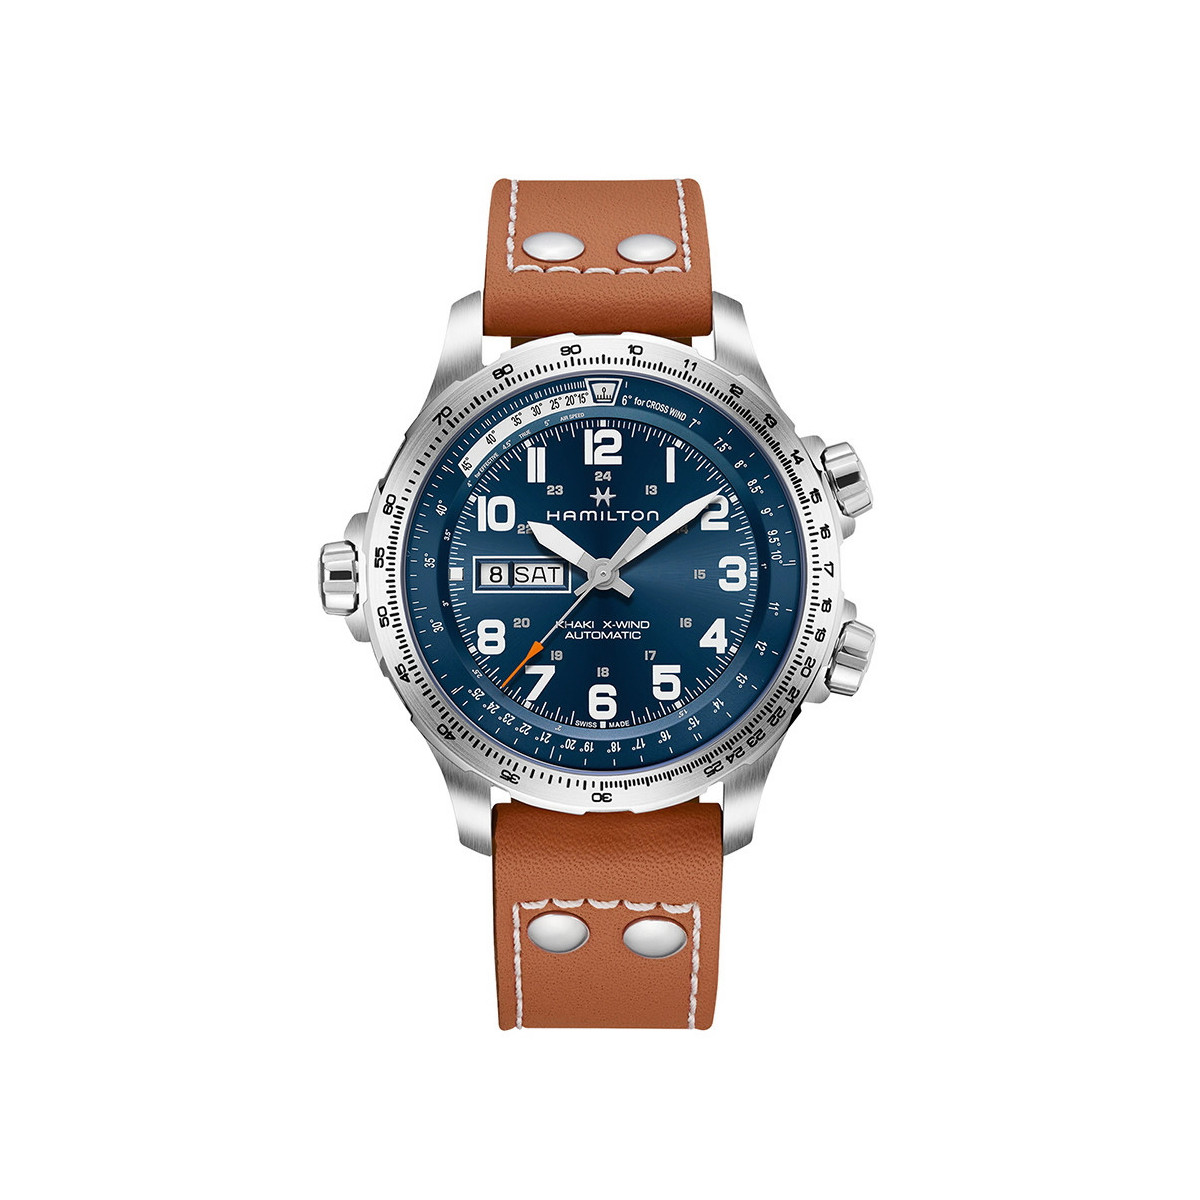 HAMILTON KHAKI AVIATION X-WIND AUTOMATICO